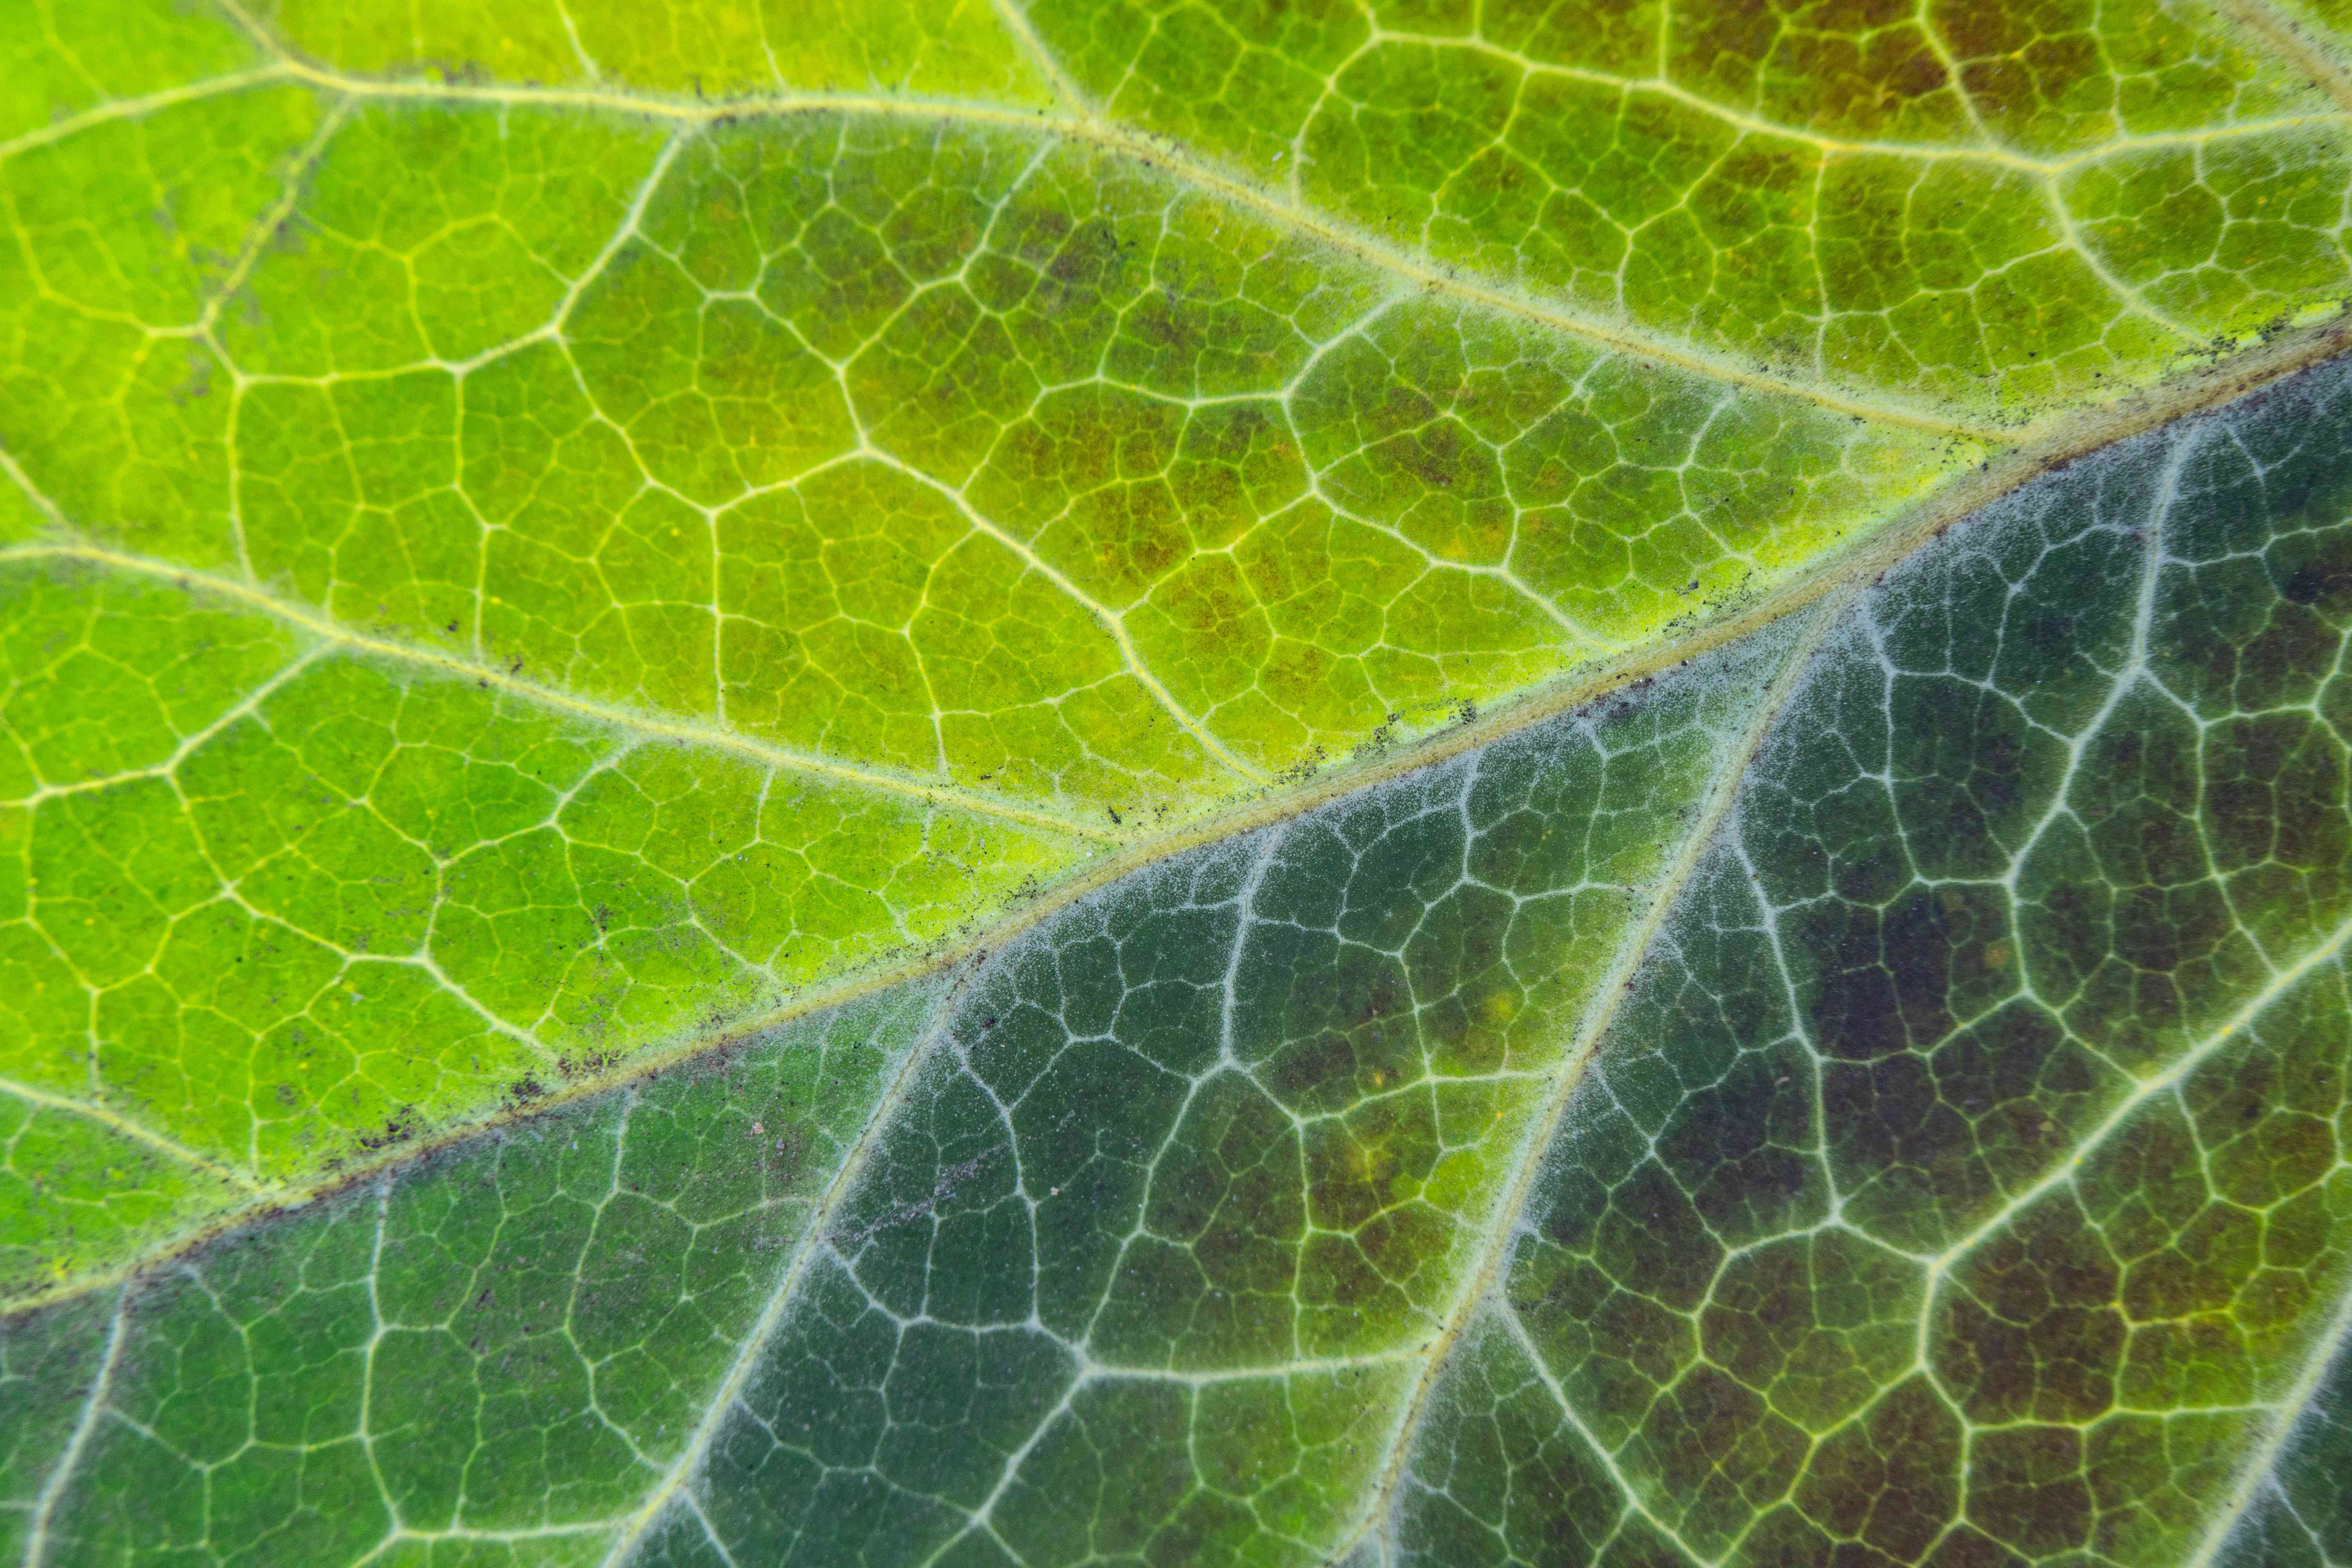 macro shot of green leaf veins with dark discoloration